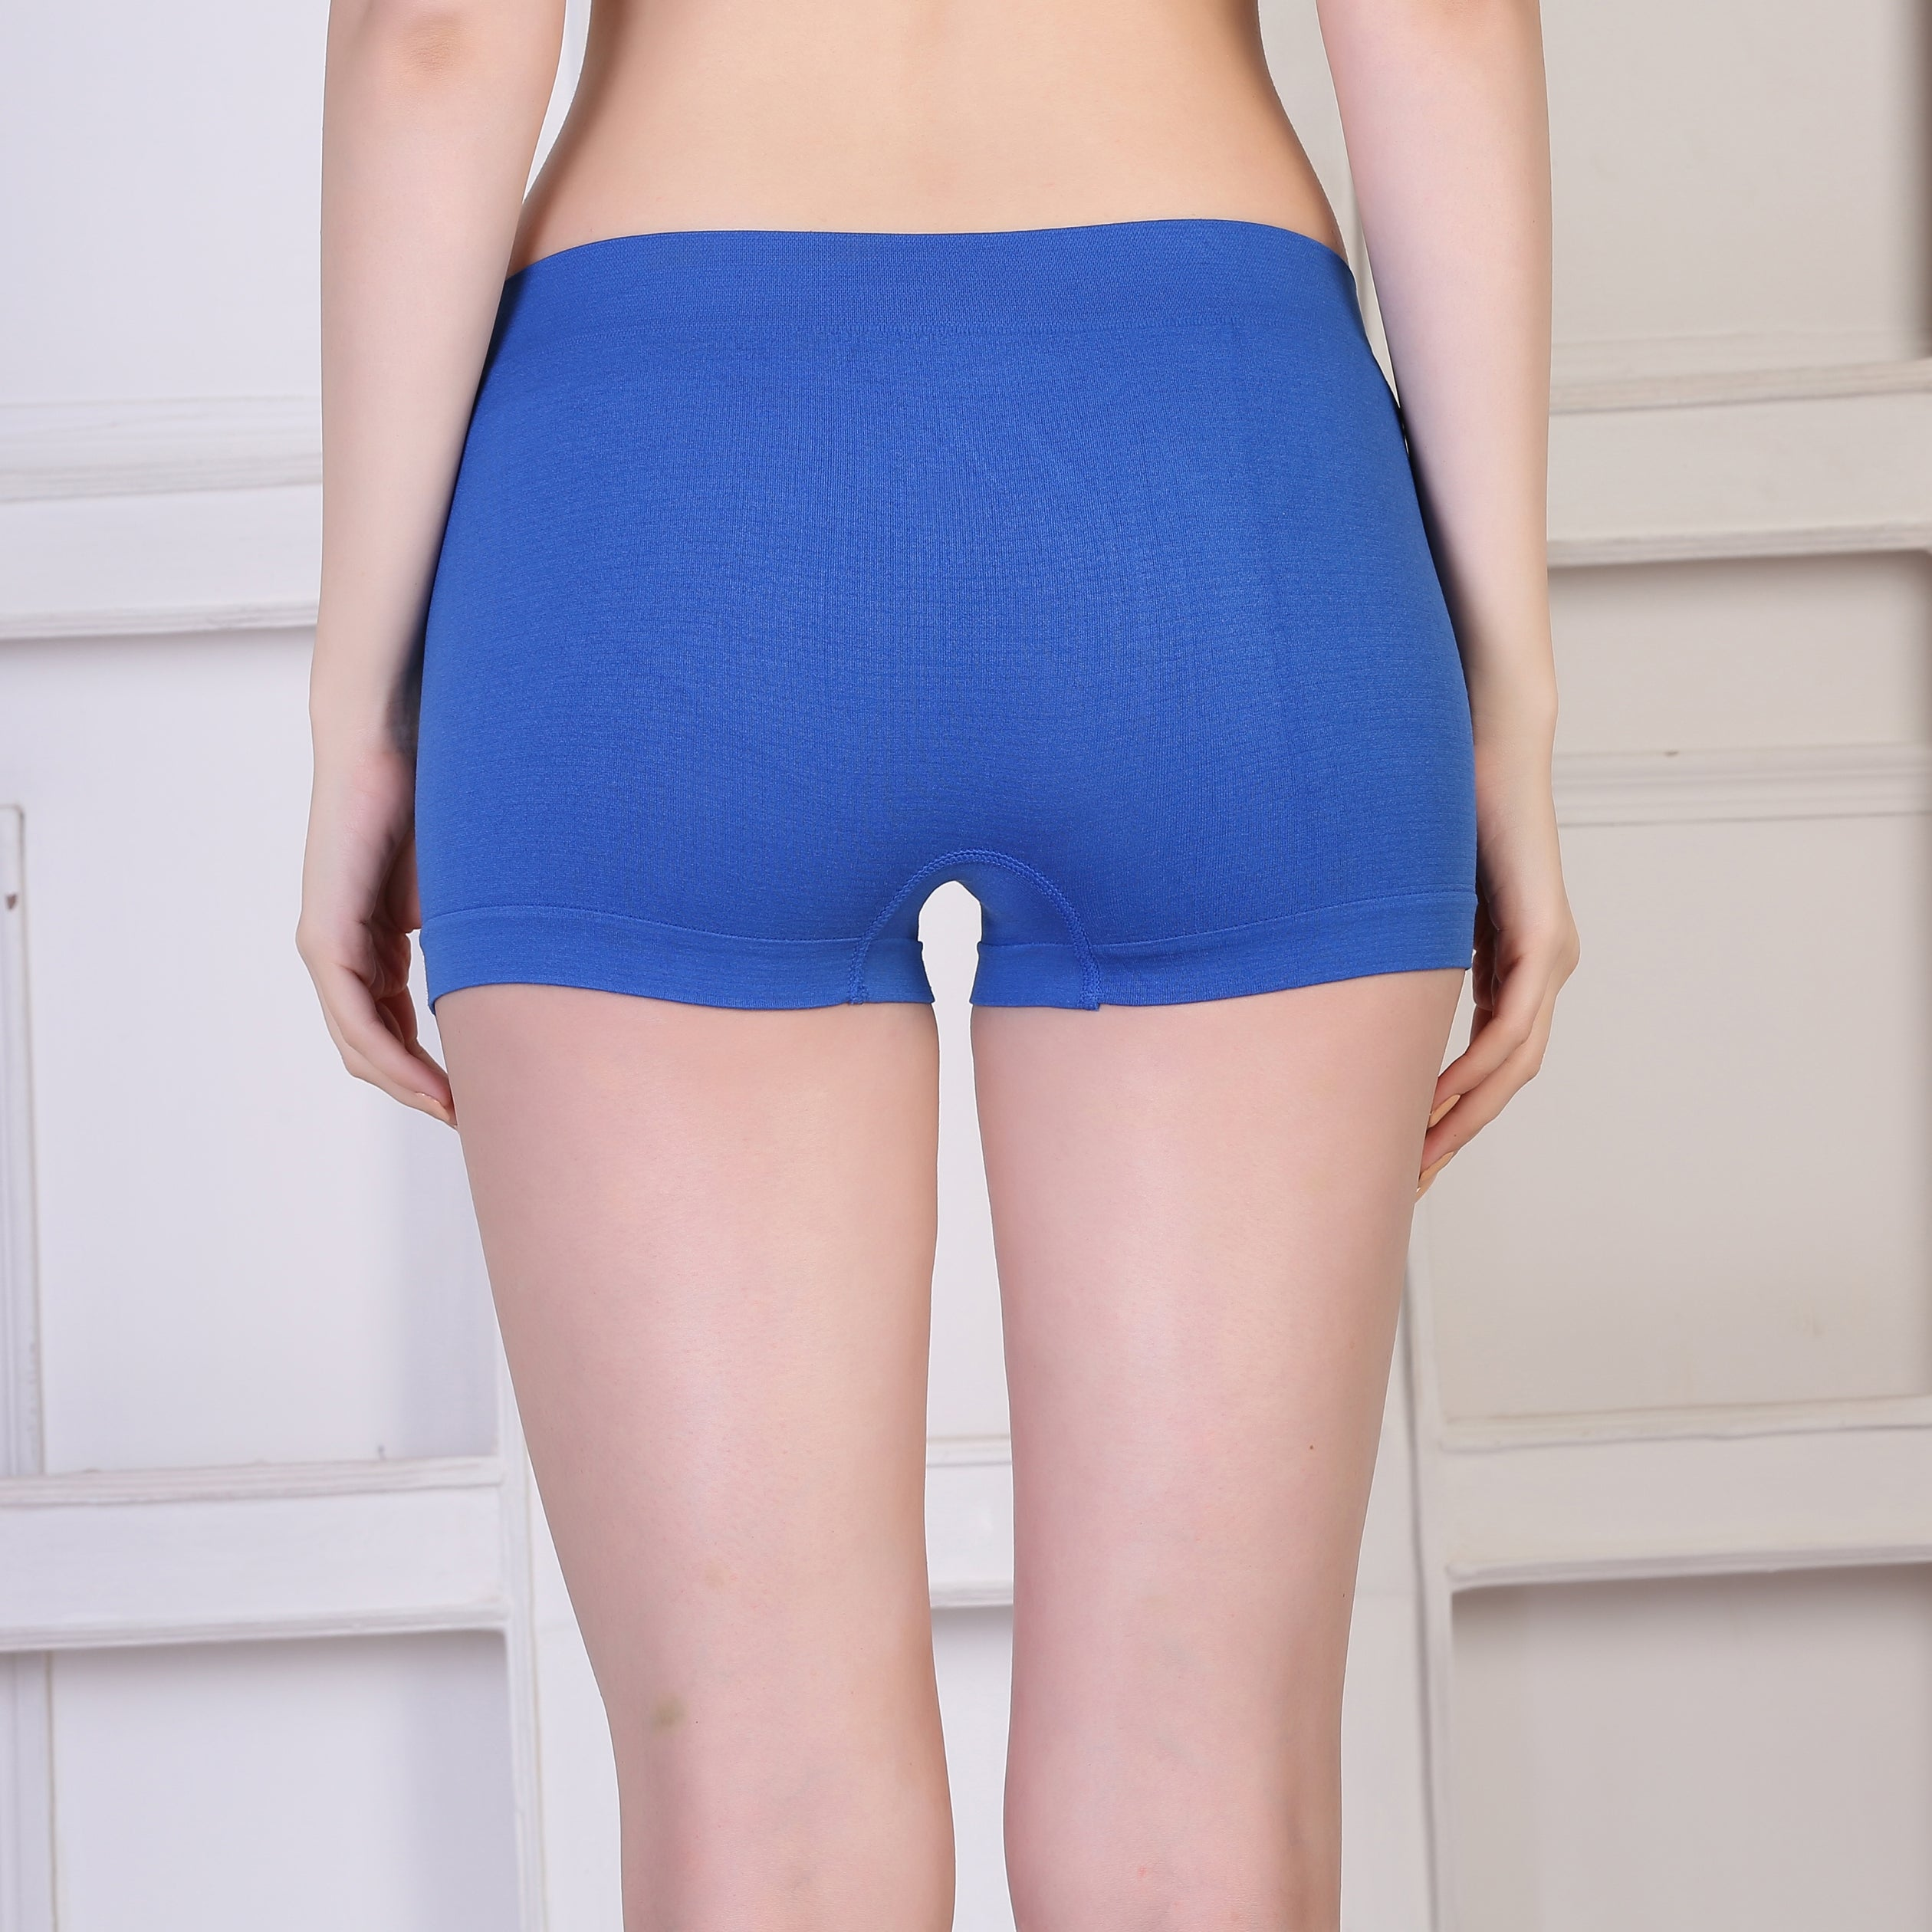 Ficuster Blue Solid High Rise Boyshort Panty